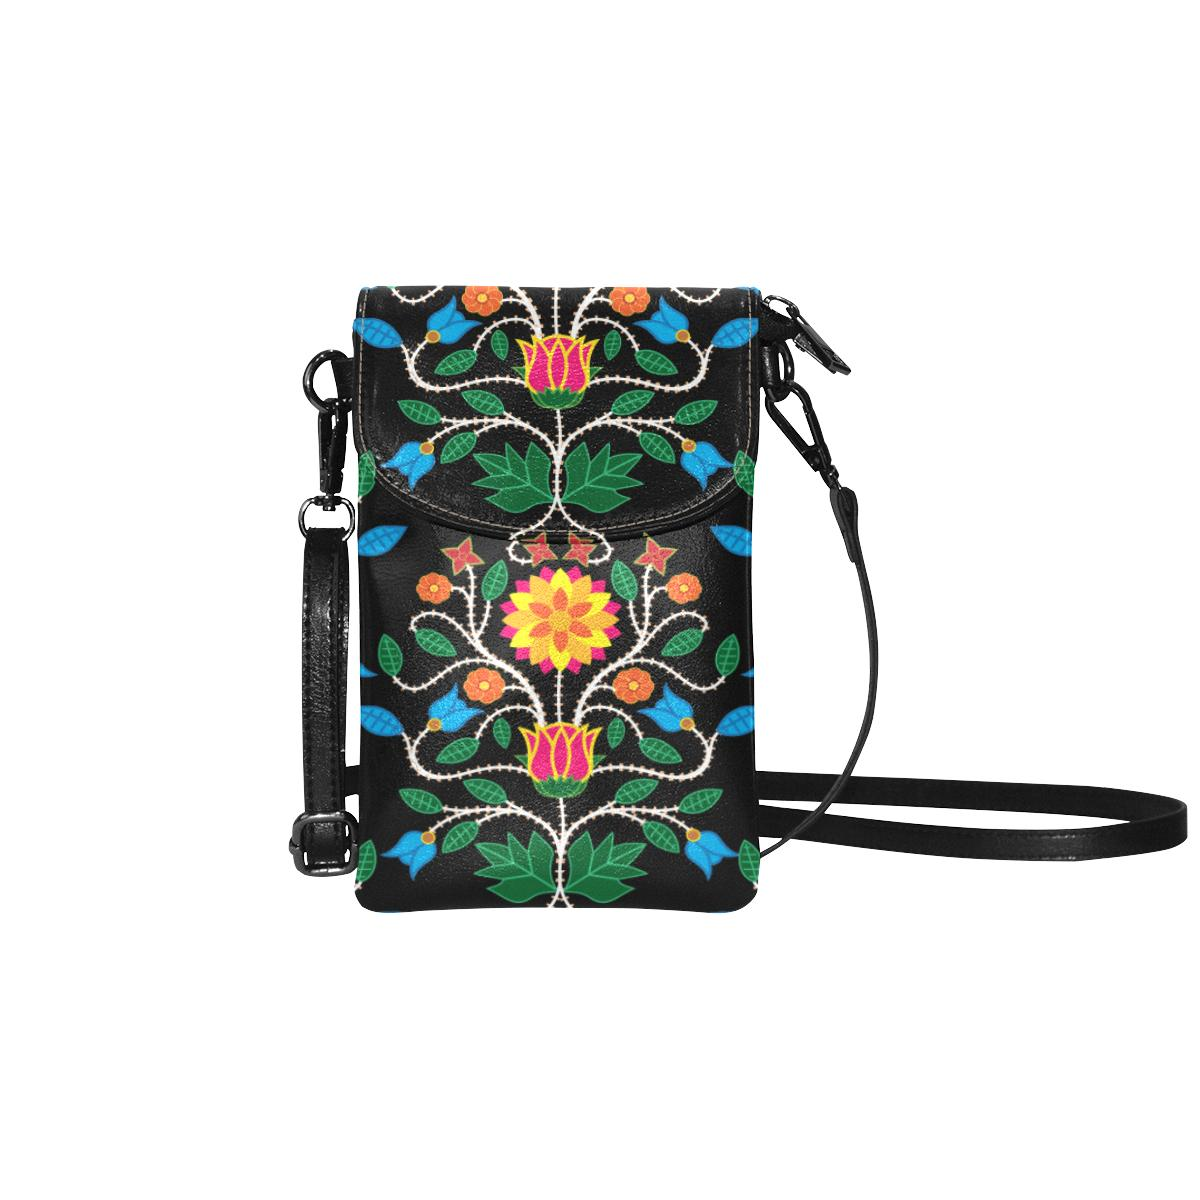 Floral Beadwork Four Clans Small Cell Phone Purse (Model 1711) Small Cell Phone Purse (1711) e-joyer